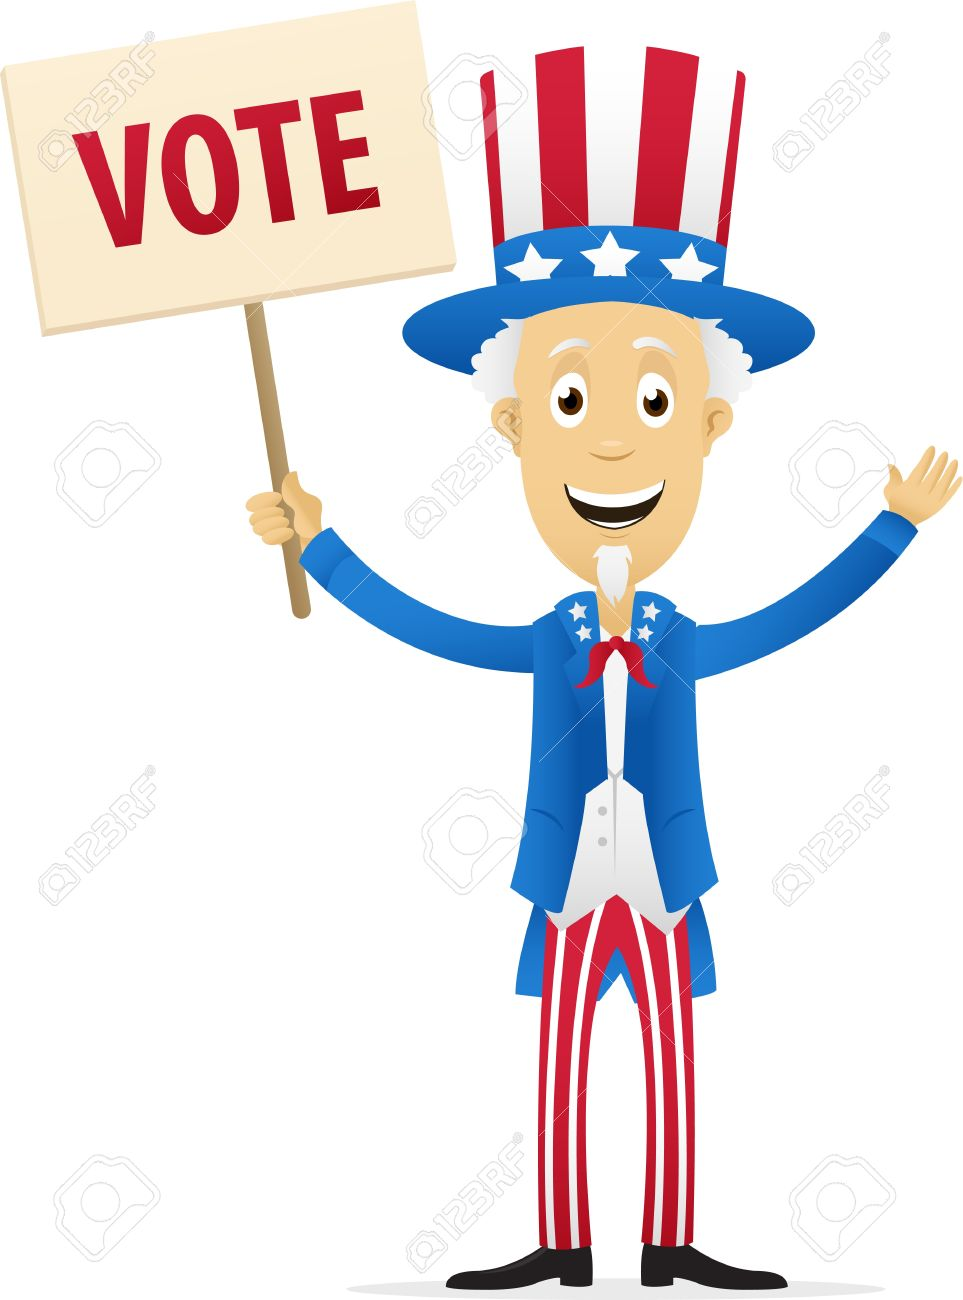 Digitally Generated Image Of Uncle Sam Holding Vote Placard.